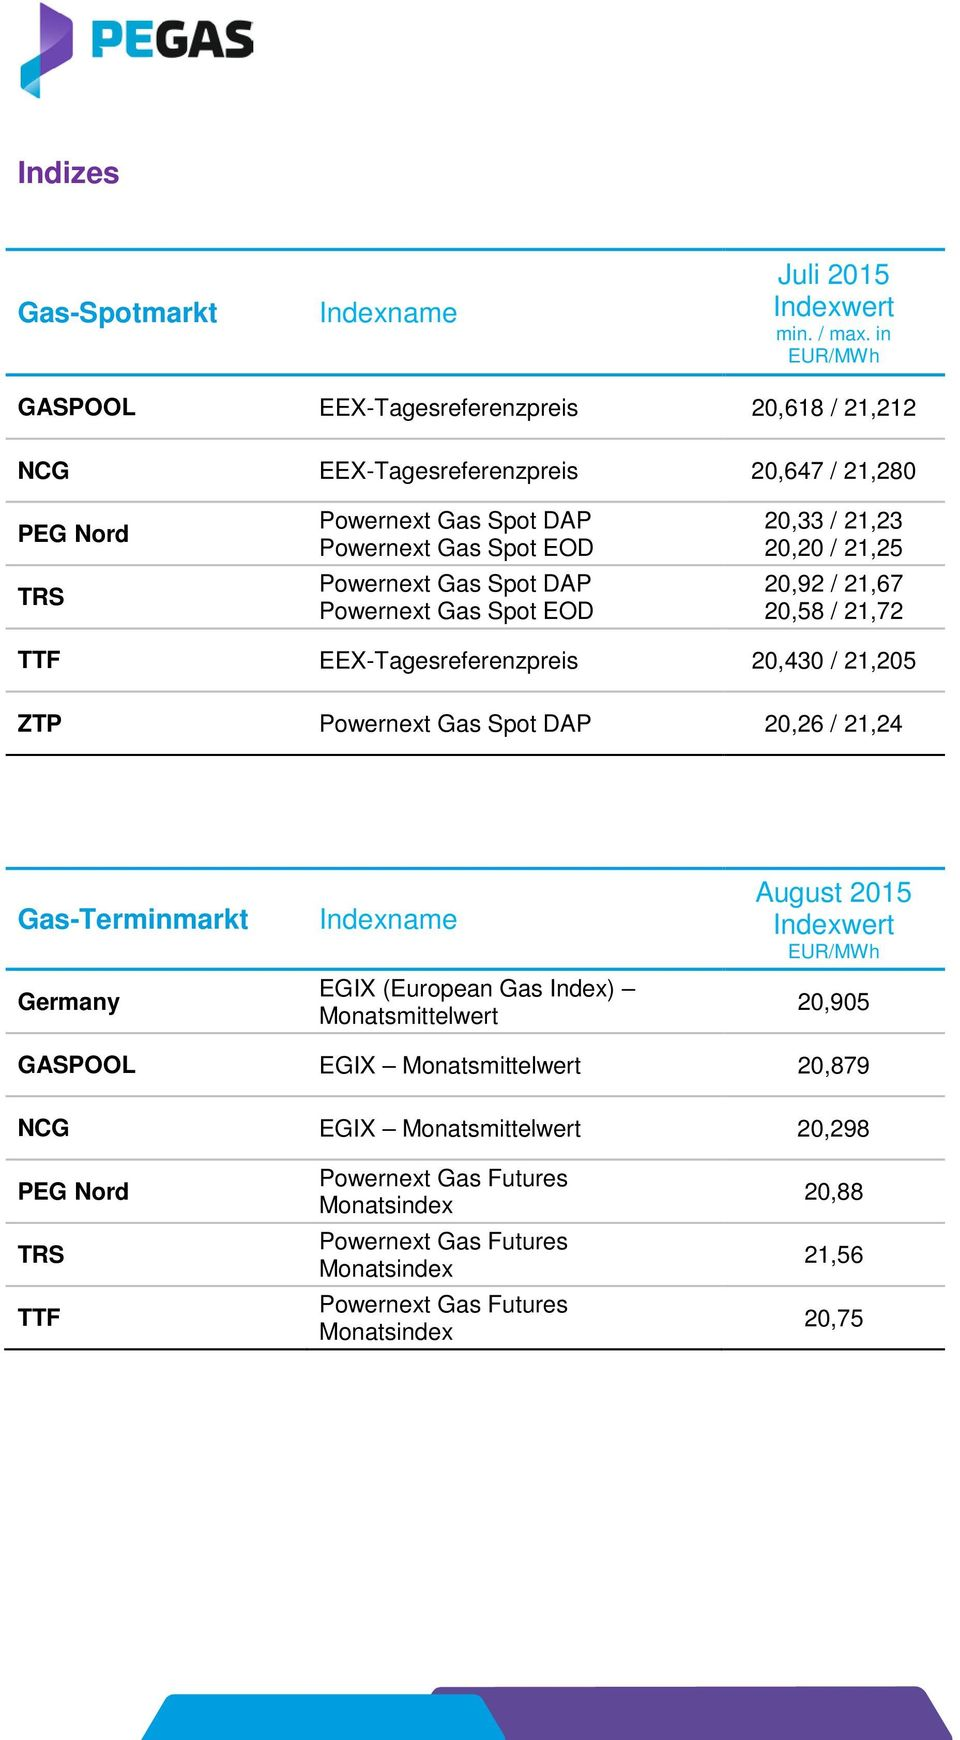 Powernext Gas Spot DAP Powernext Gas Spot EOD 20,33 / 21,23 20,20 / 21,25 20,92 / 21,67 20,58 / 21,72 TTF EEX-Tagesreferenzpreis 20,430 / 21,205 ZTP Powernext Gas